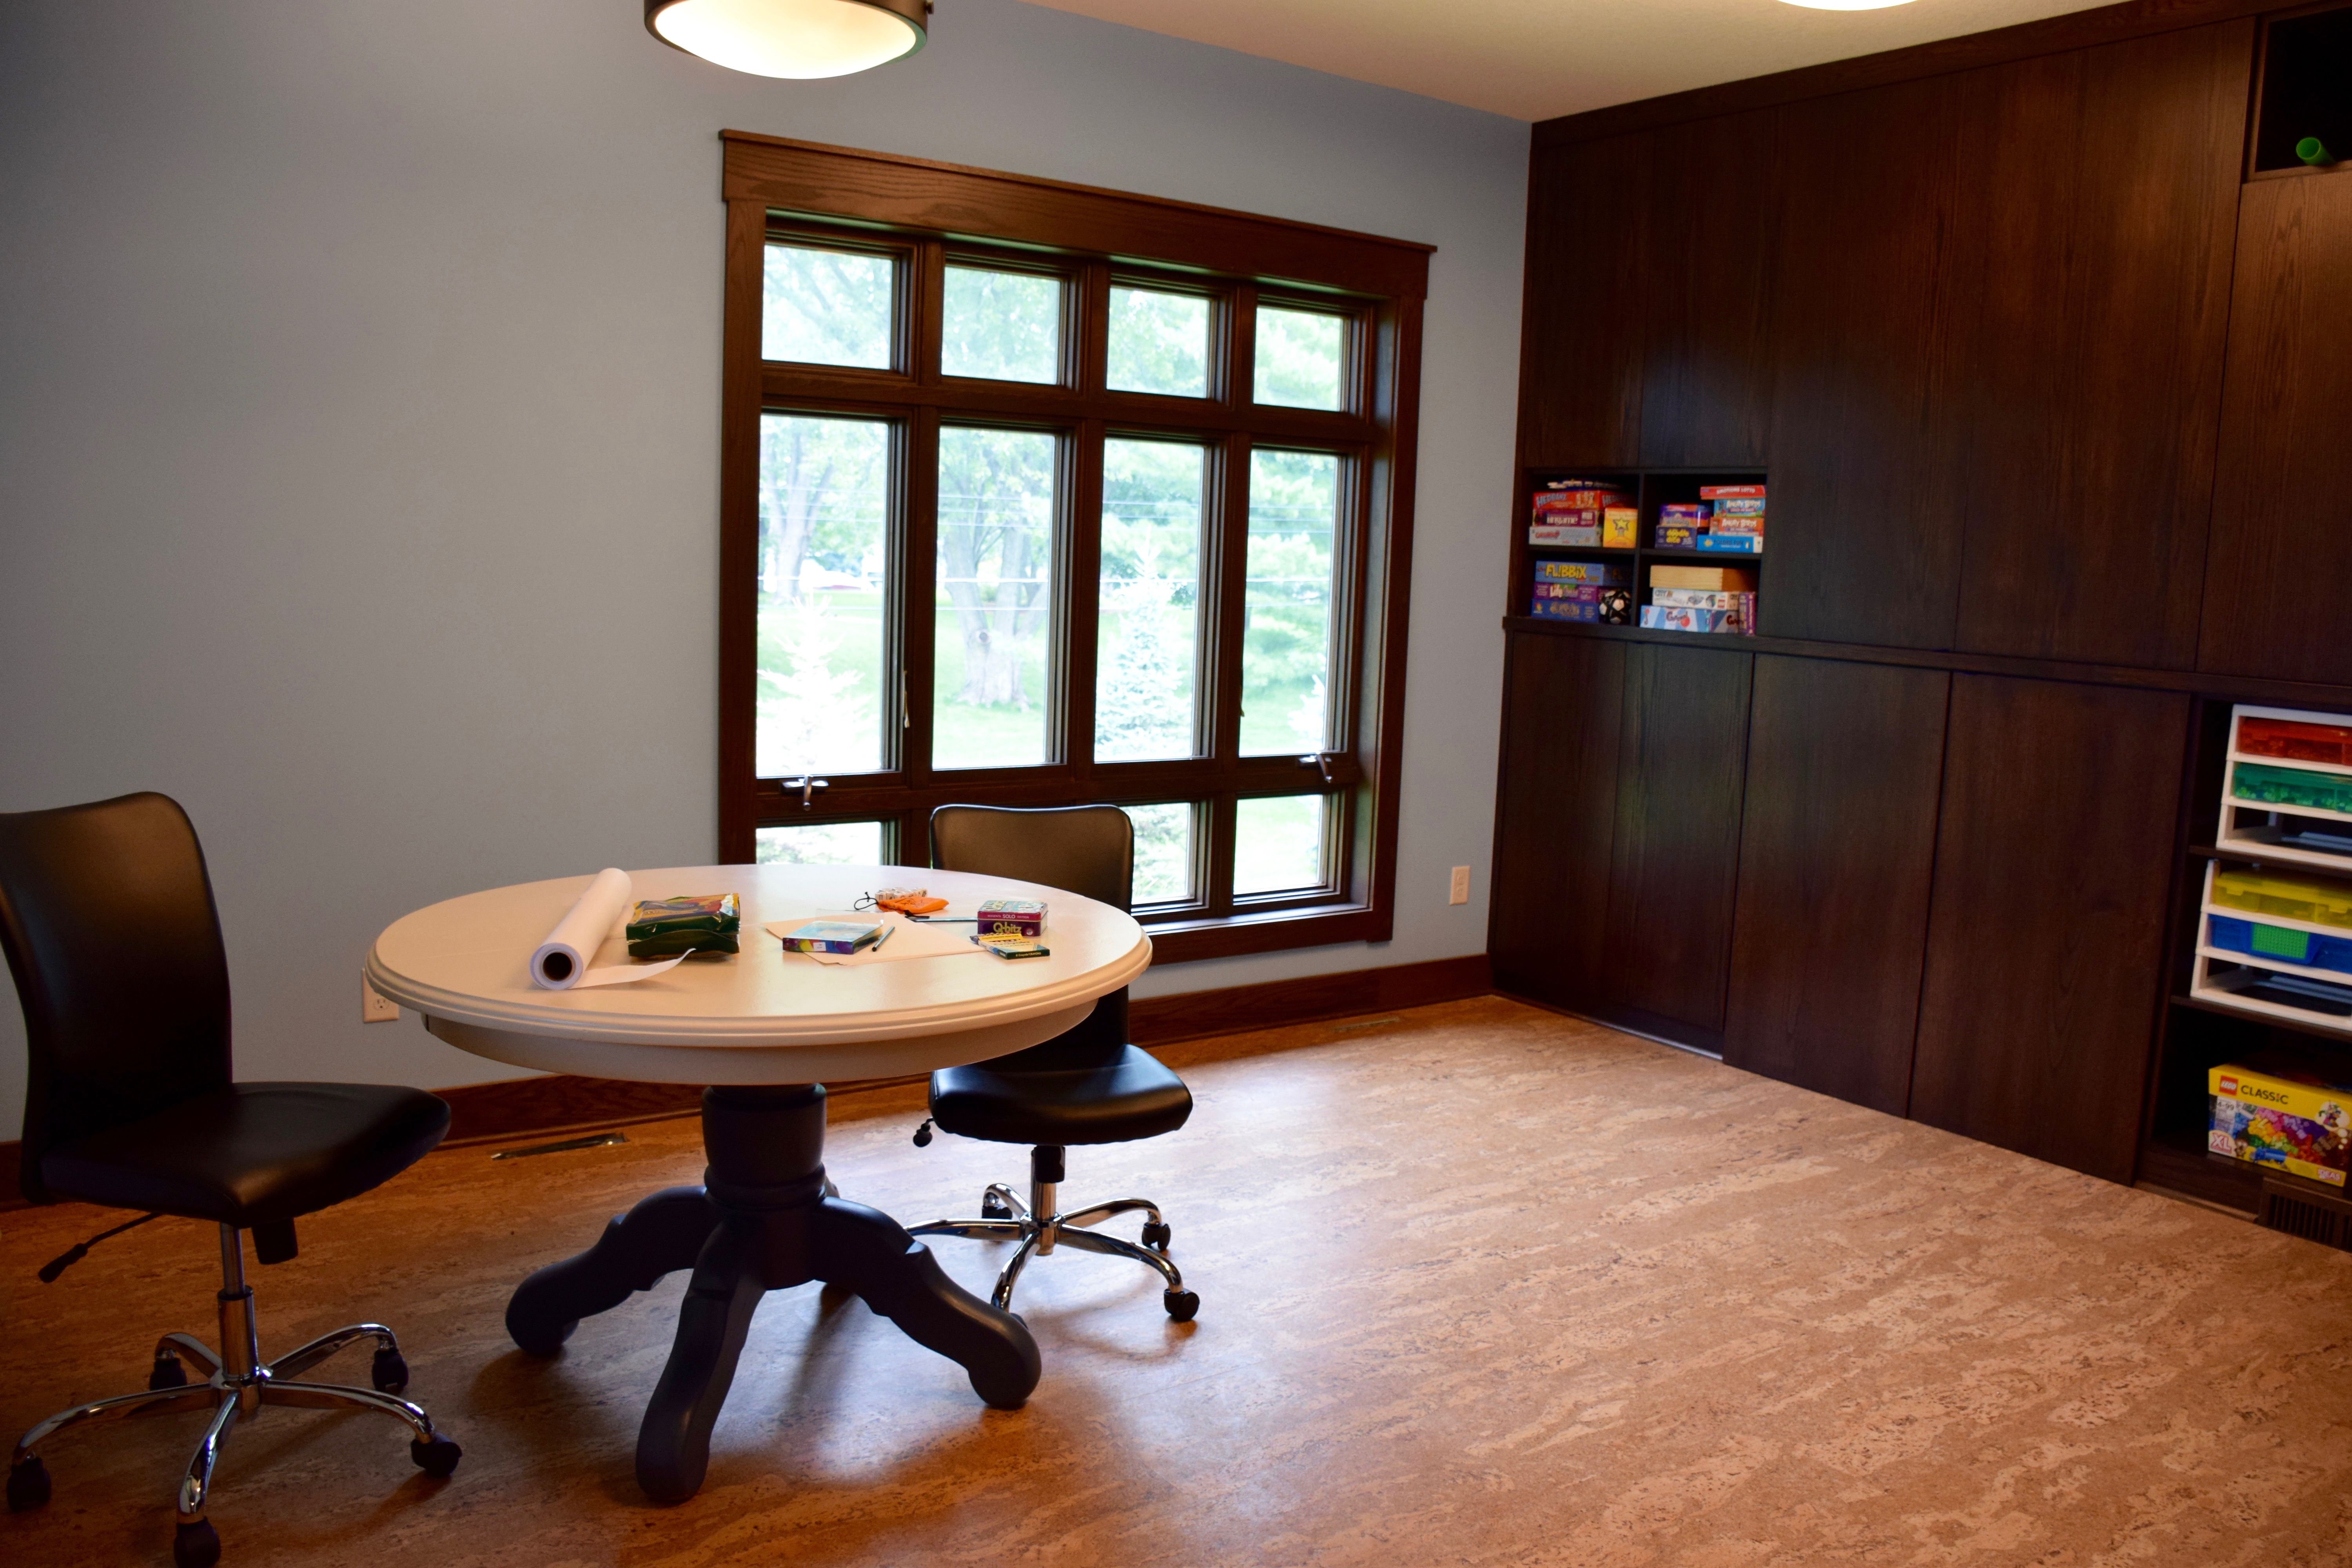 This Is Another Angle Of The Older Kids Play Room At